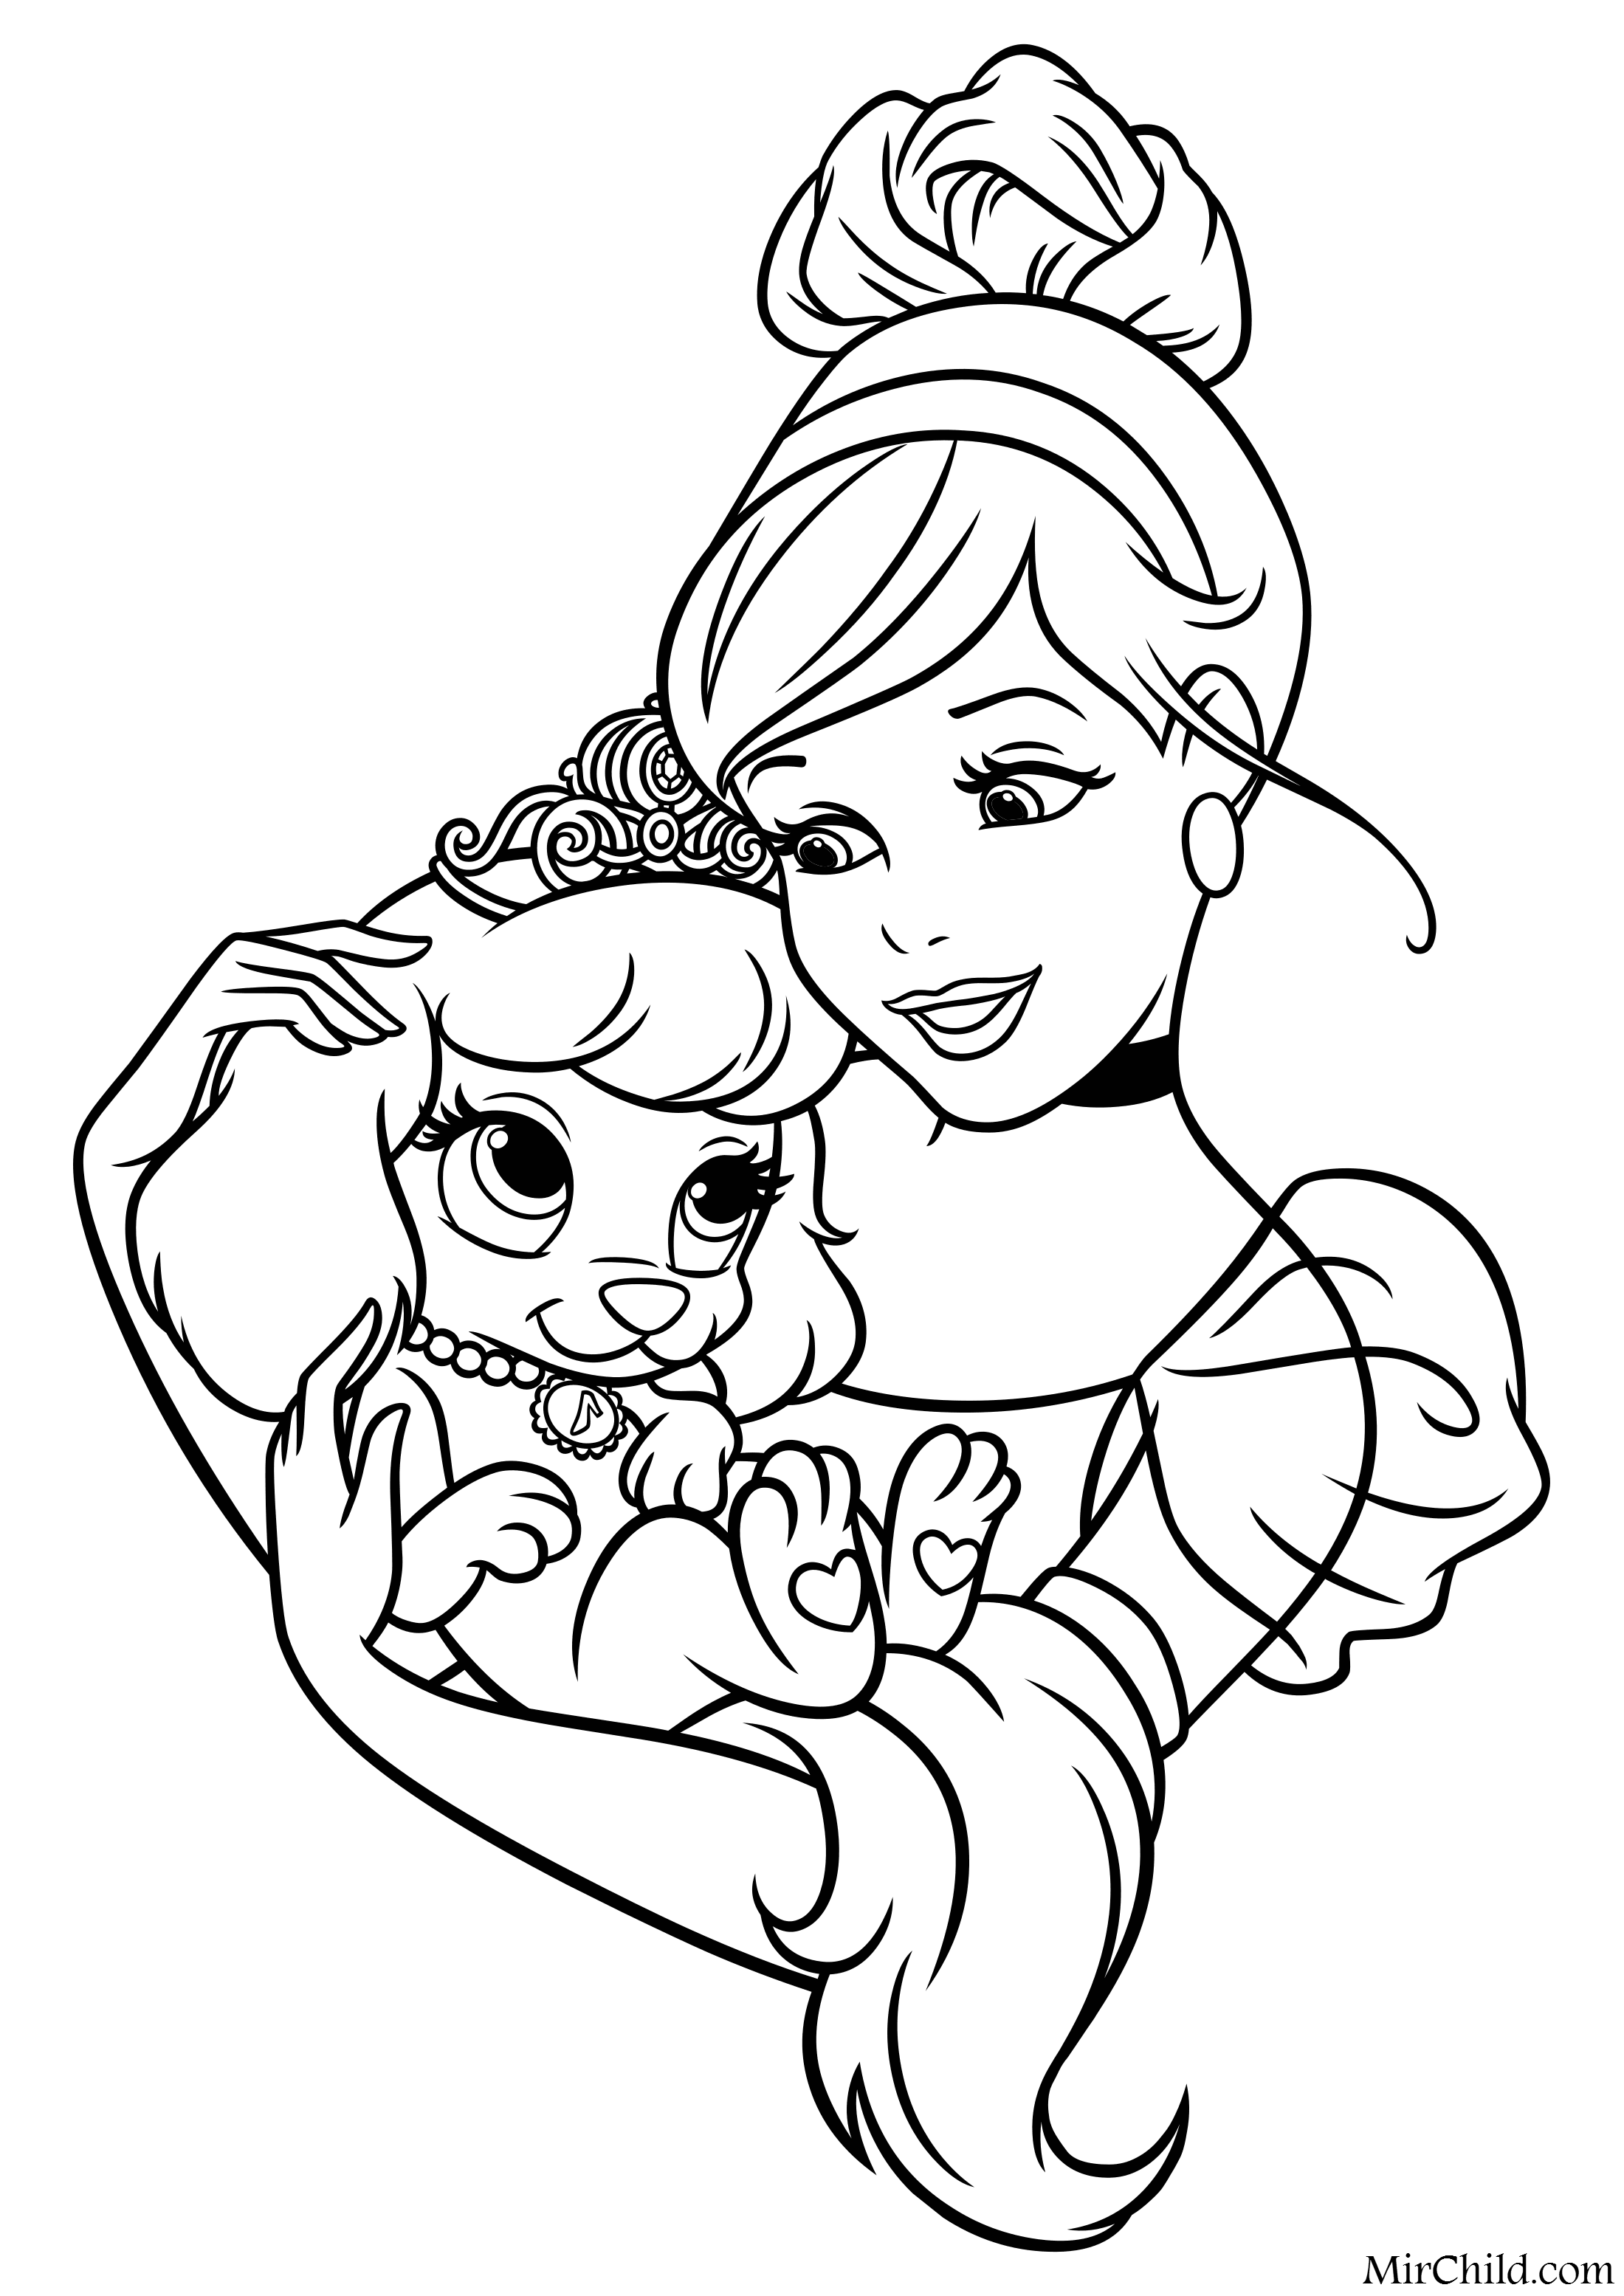 princess puppy coloring pages printable henna strawberry shortcake coloring pages pages coloring puppy princess